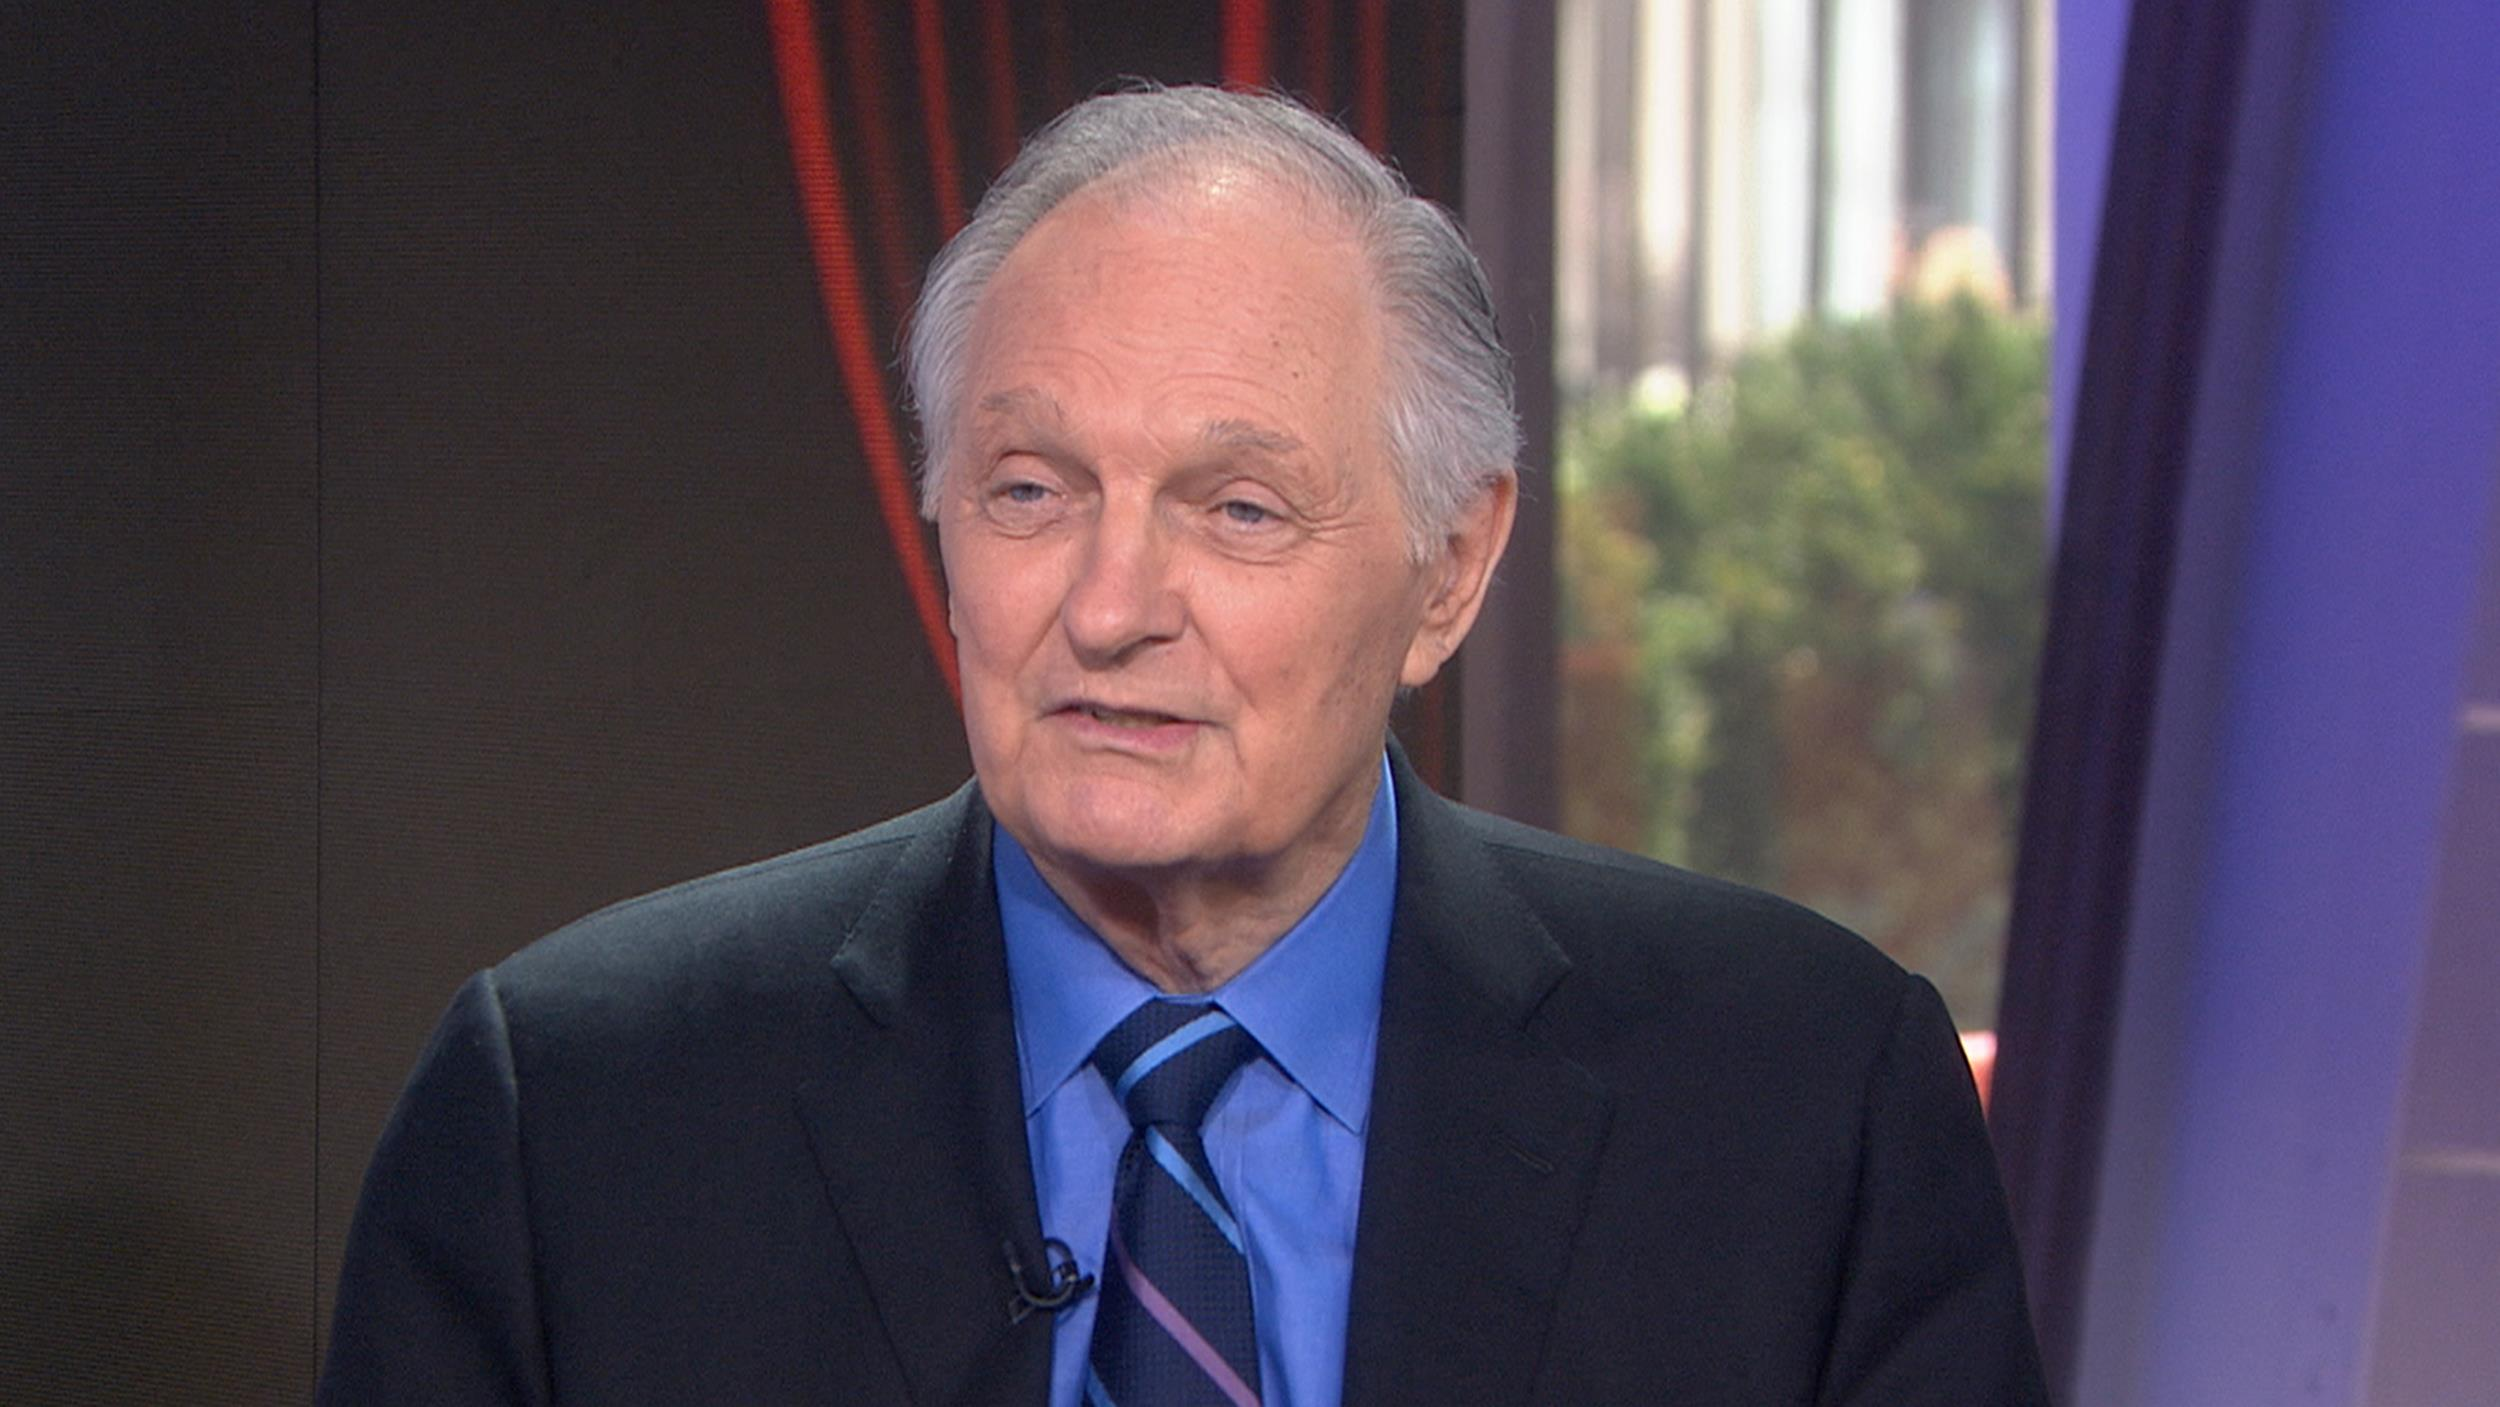 Alan Alda Knew His Wife Was The One After They Shared A Cake